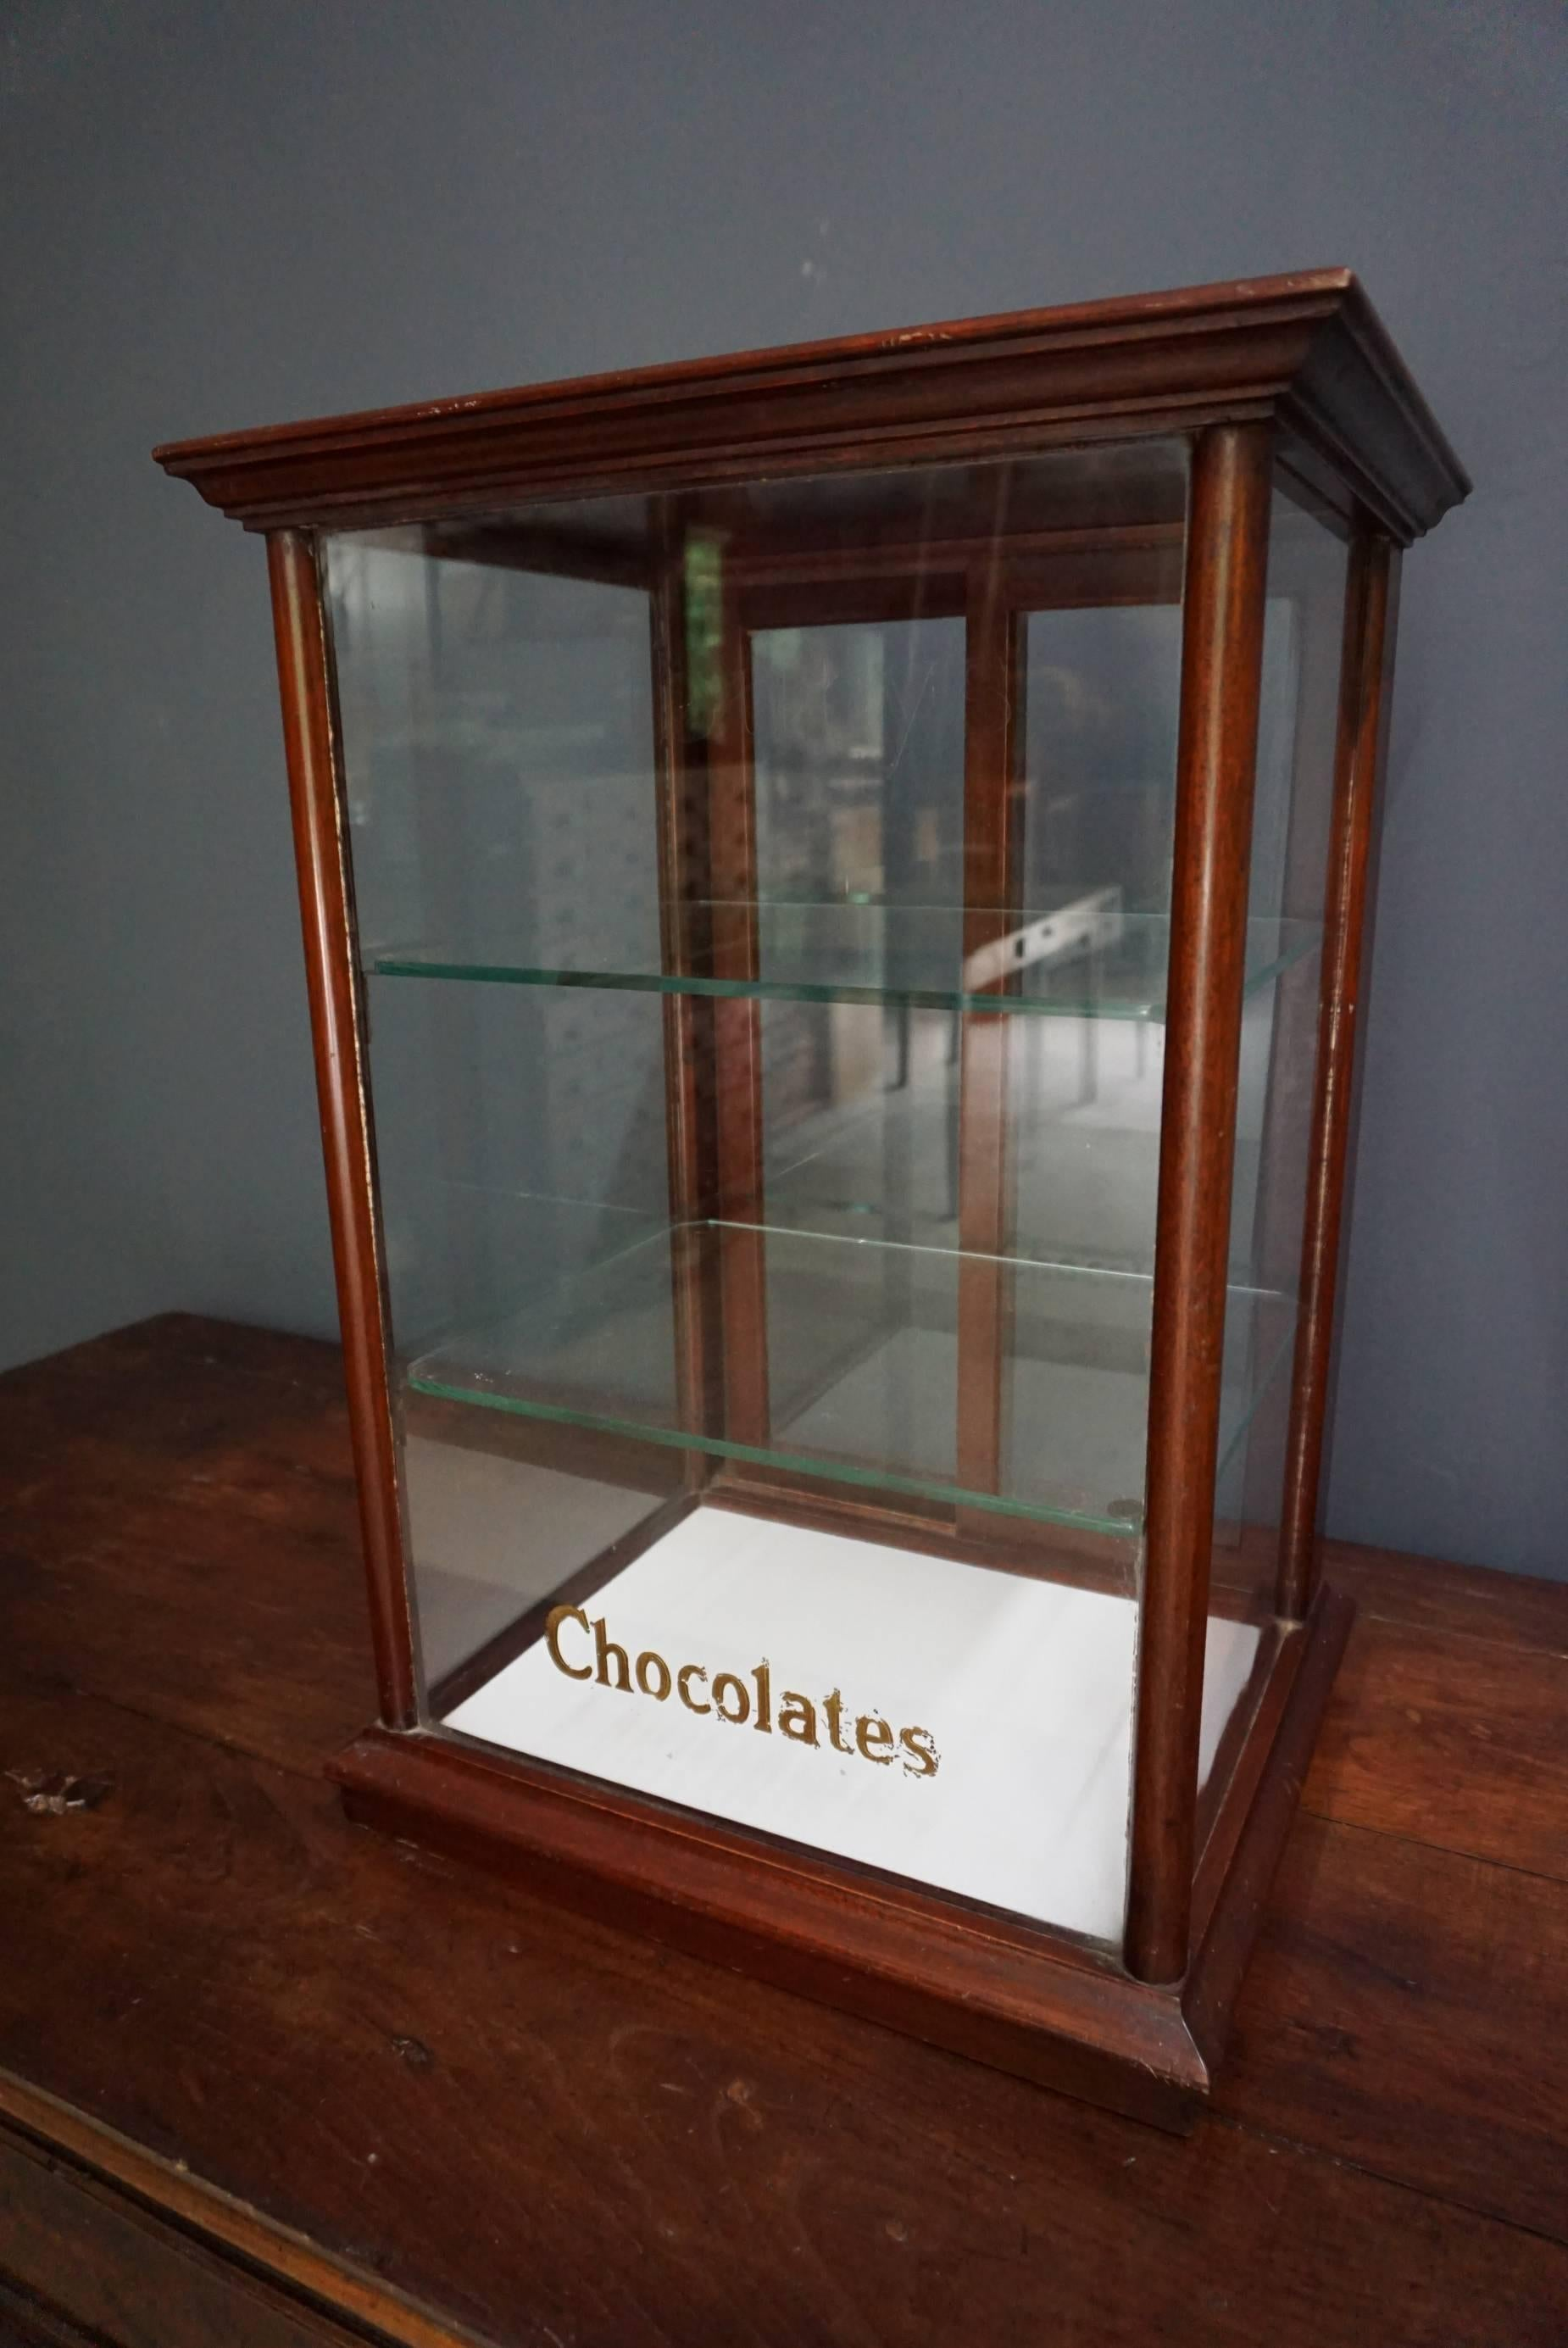 This Shop Display Cabinet Is Made From Mahogany, The Glass Has Gold Leaf  Lettering On